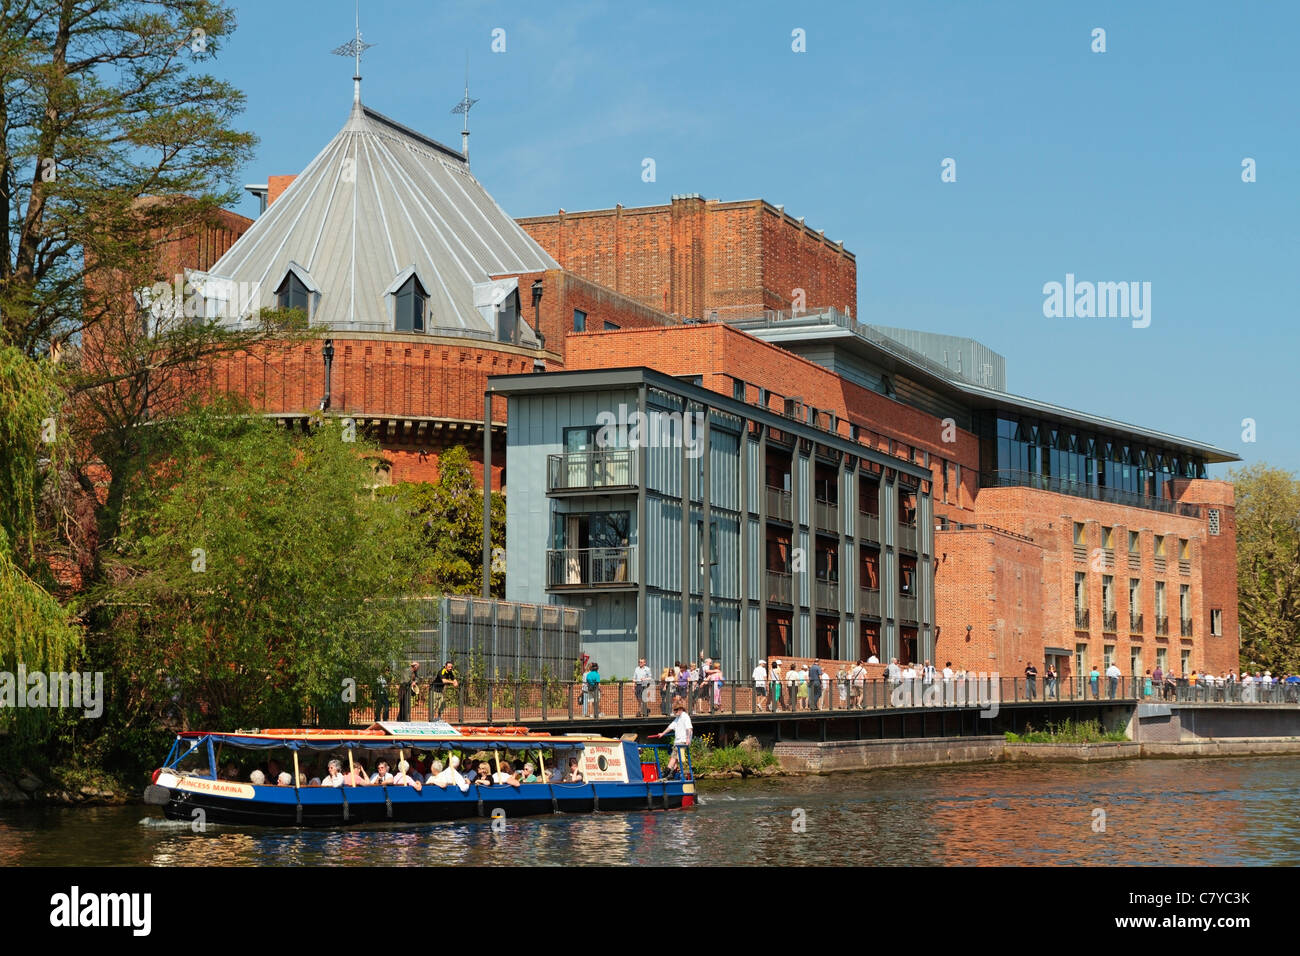 Royal Shakespeare Theatre, River Avon, Stratford-upon-avon, Warwickshire, England, United Kingdom Stock Photo